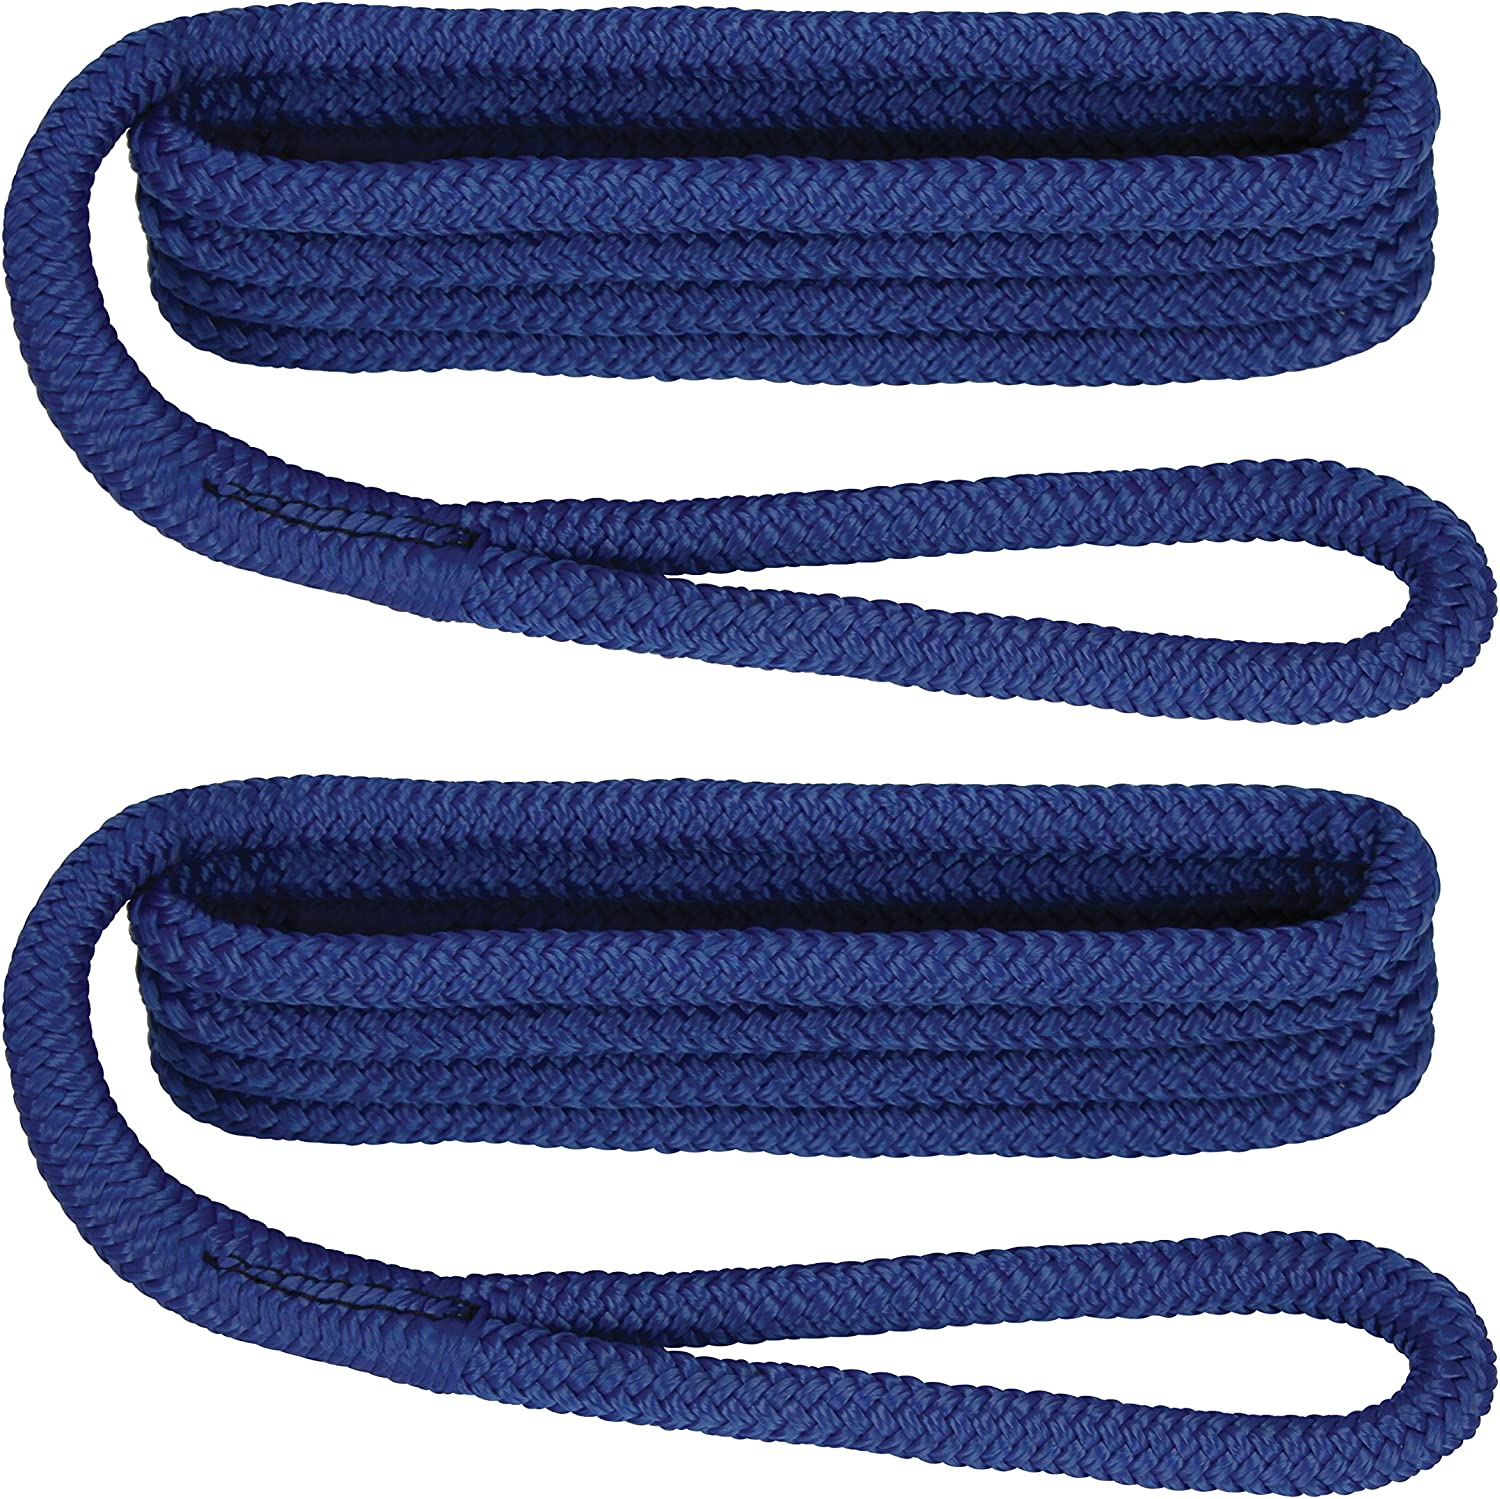 6 Pack of 1//4 Inch x 6 Ft Navy Blue Double Braid Nylon Fender Lines for Boats